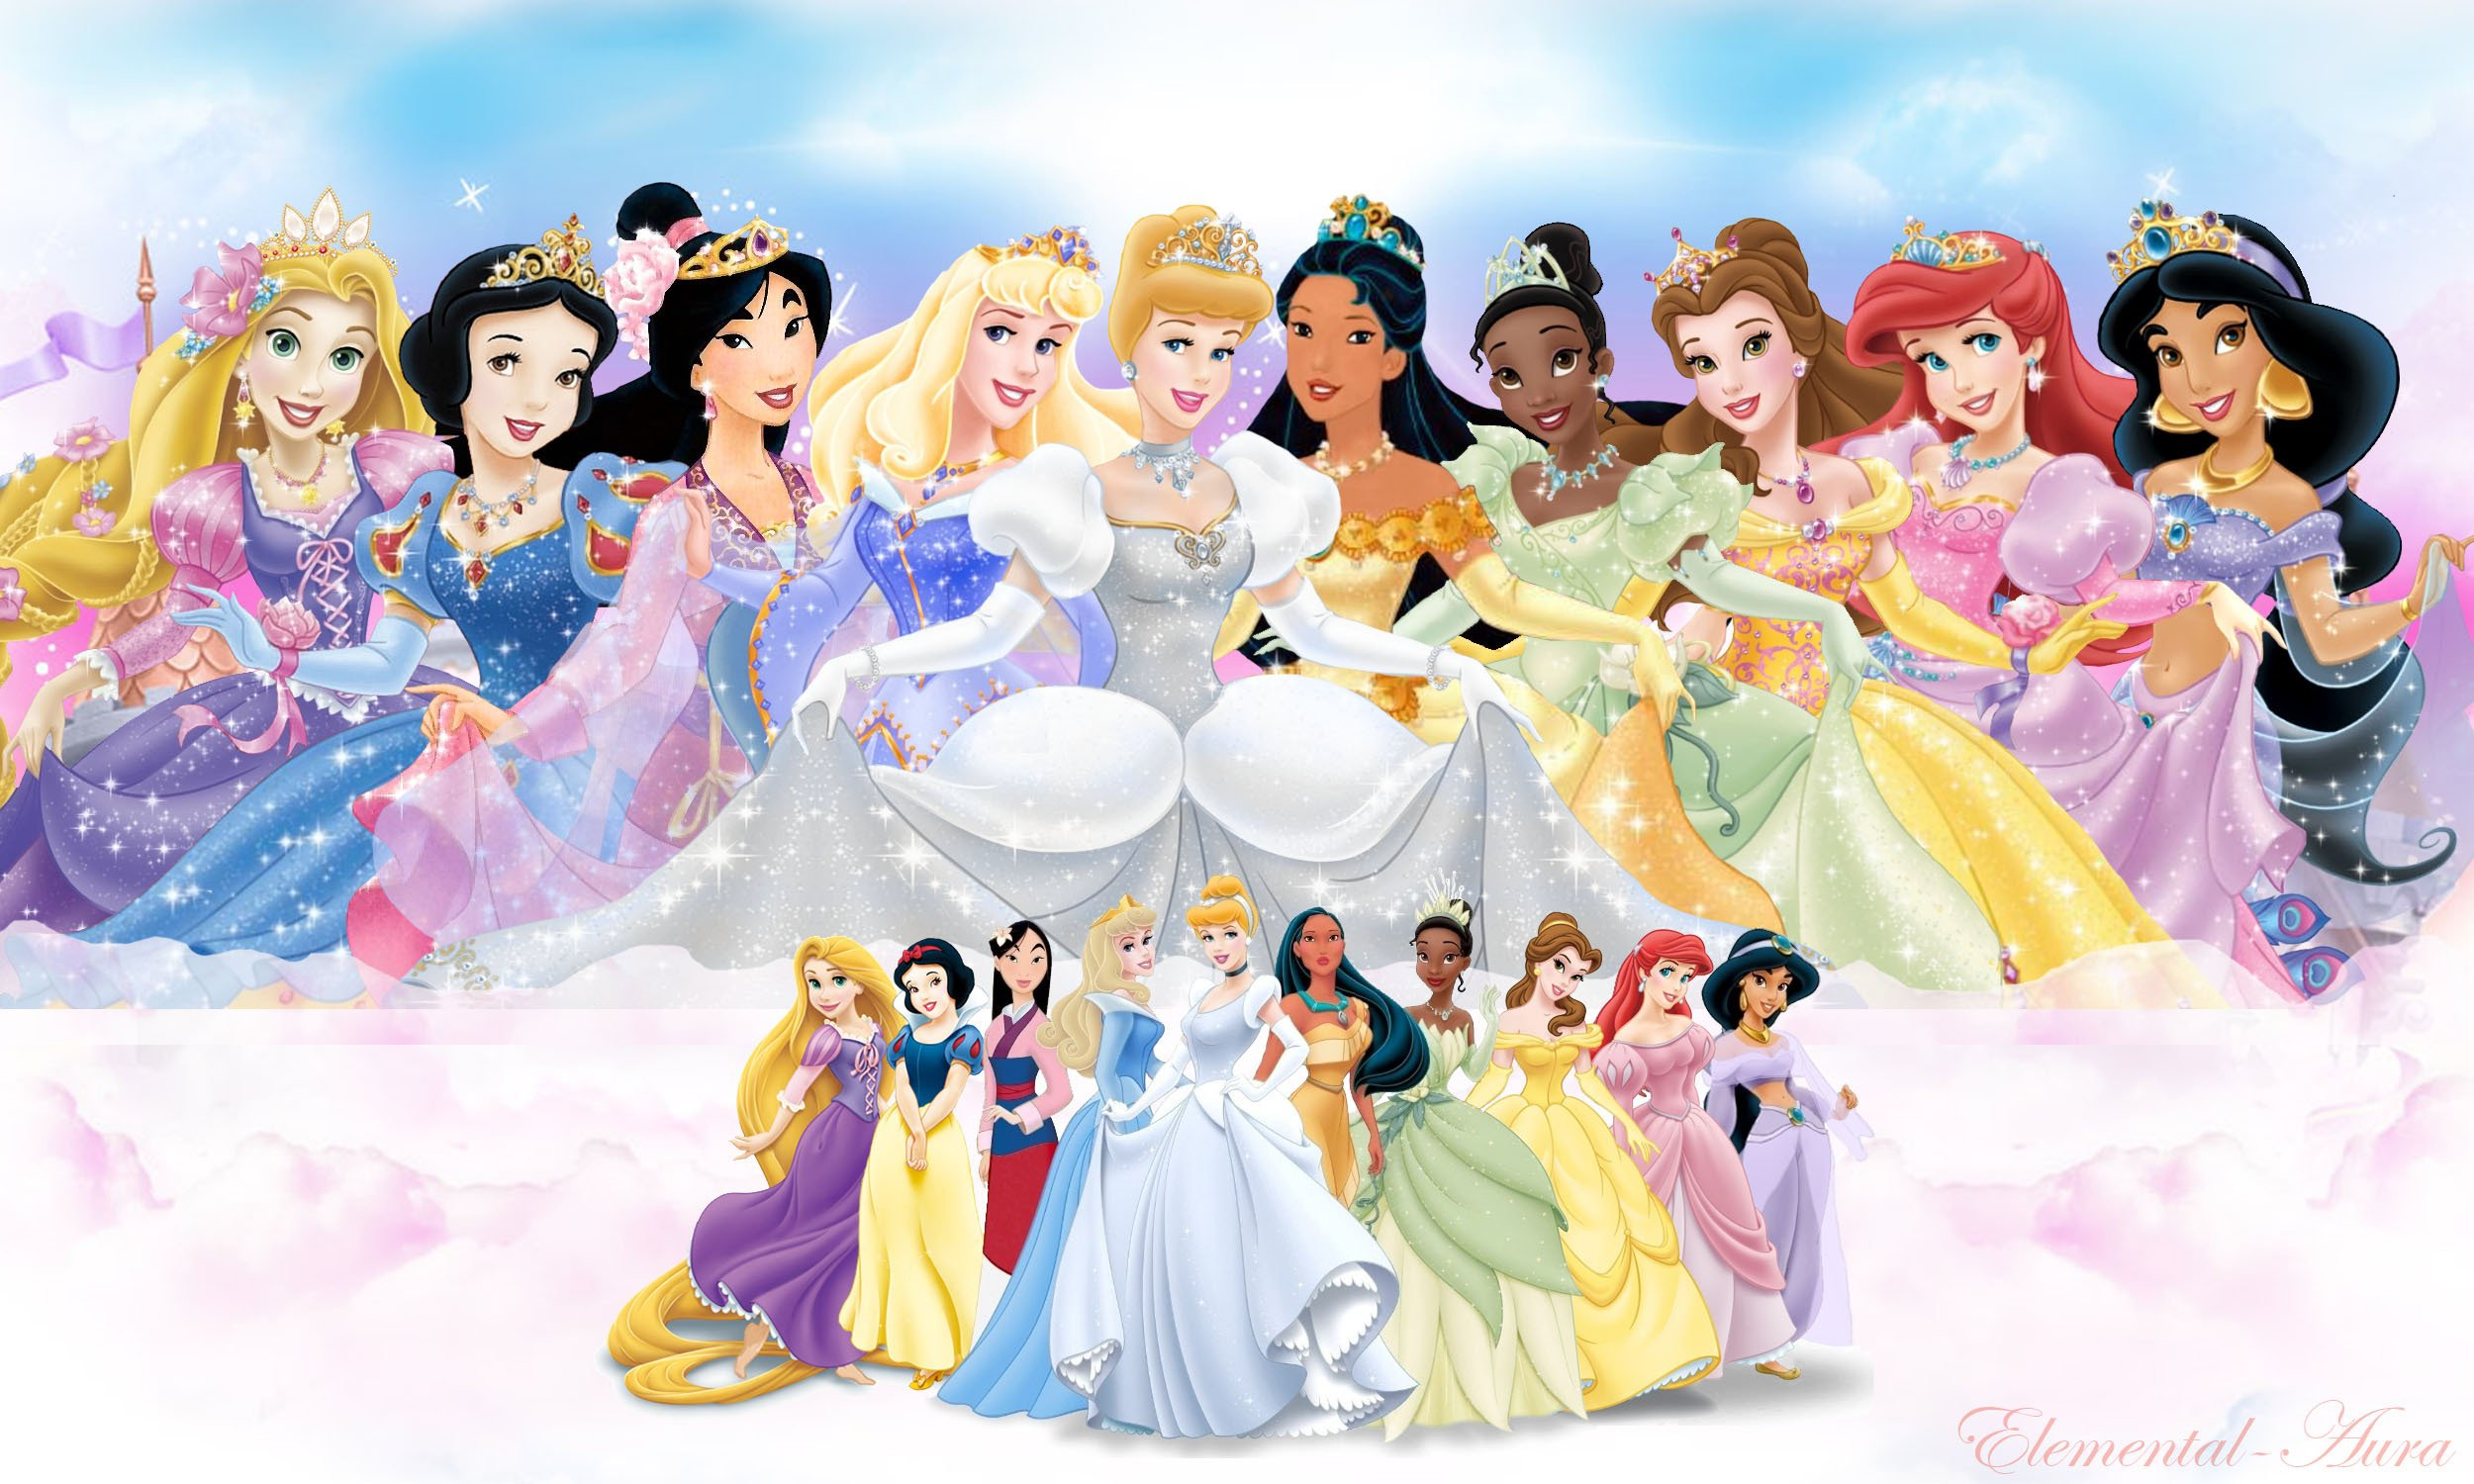 Disney Character Wallpaper Desktop 2500x1500